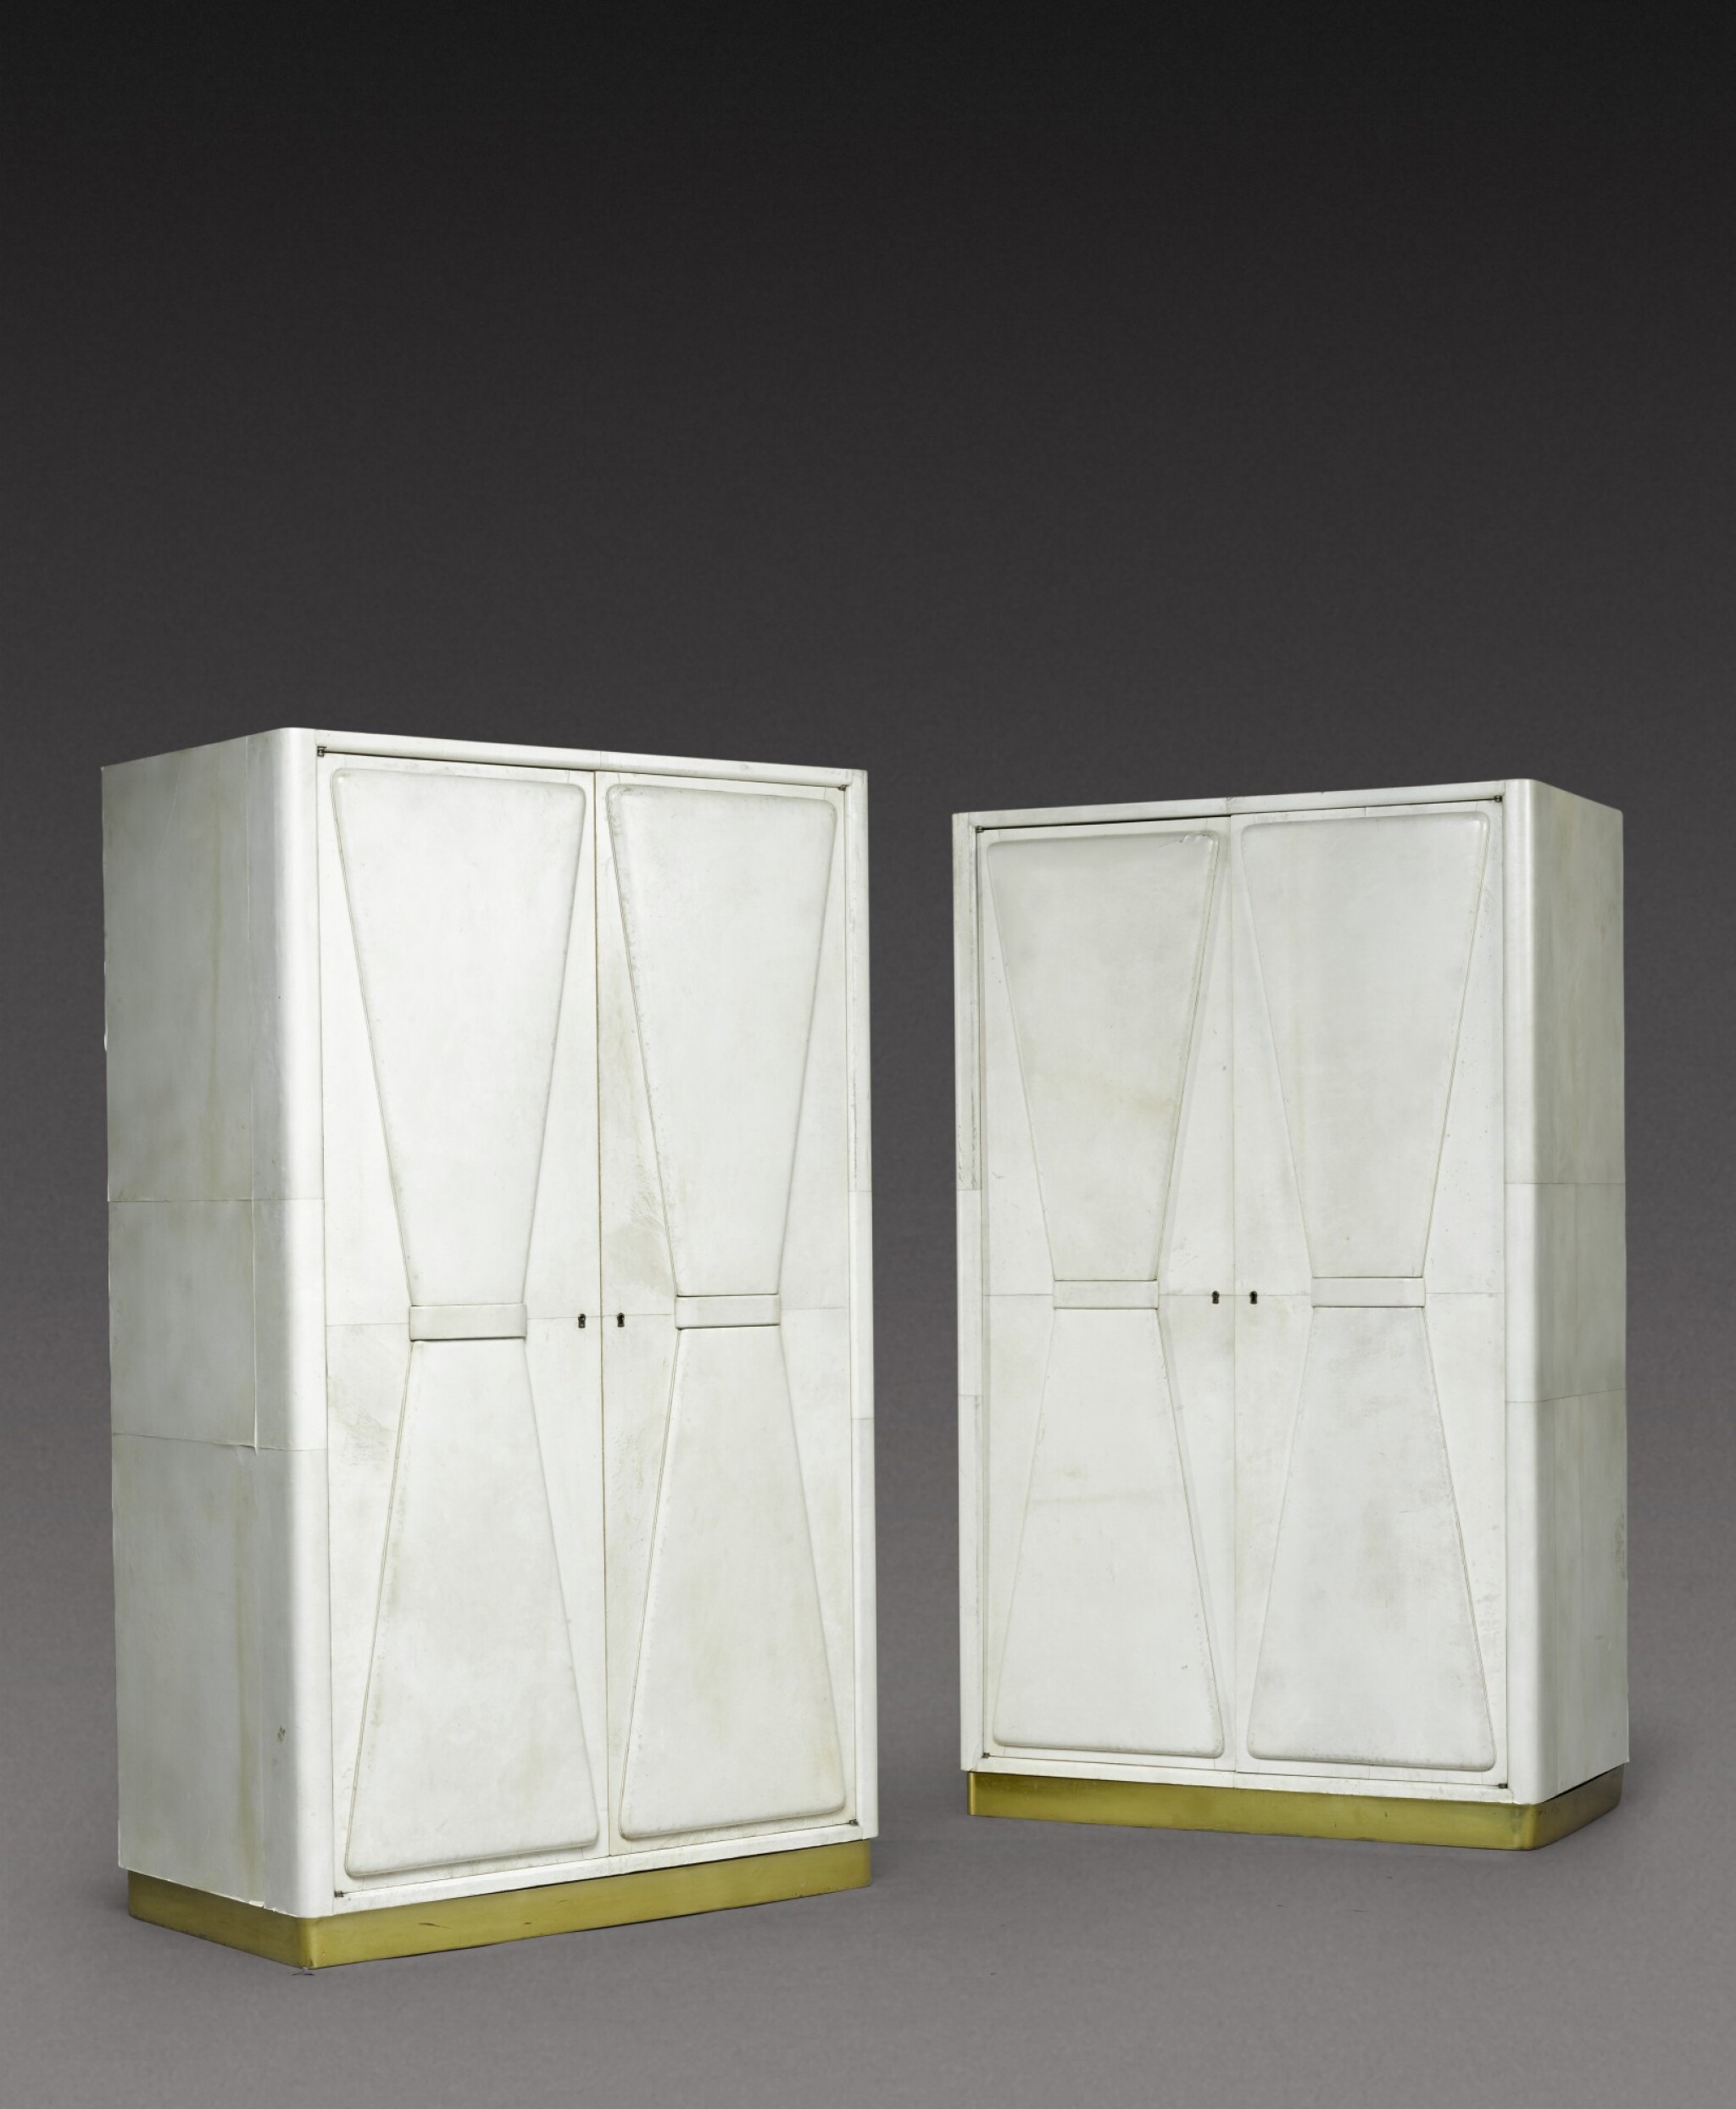 View 1 of Lot 192. A Pair of Art Deco wardrobes.